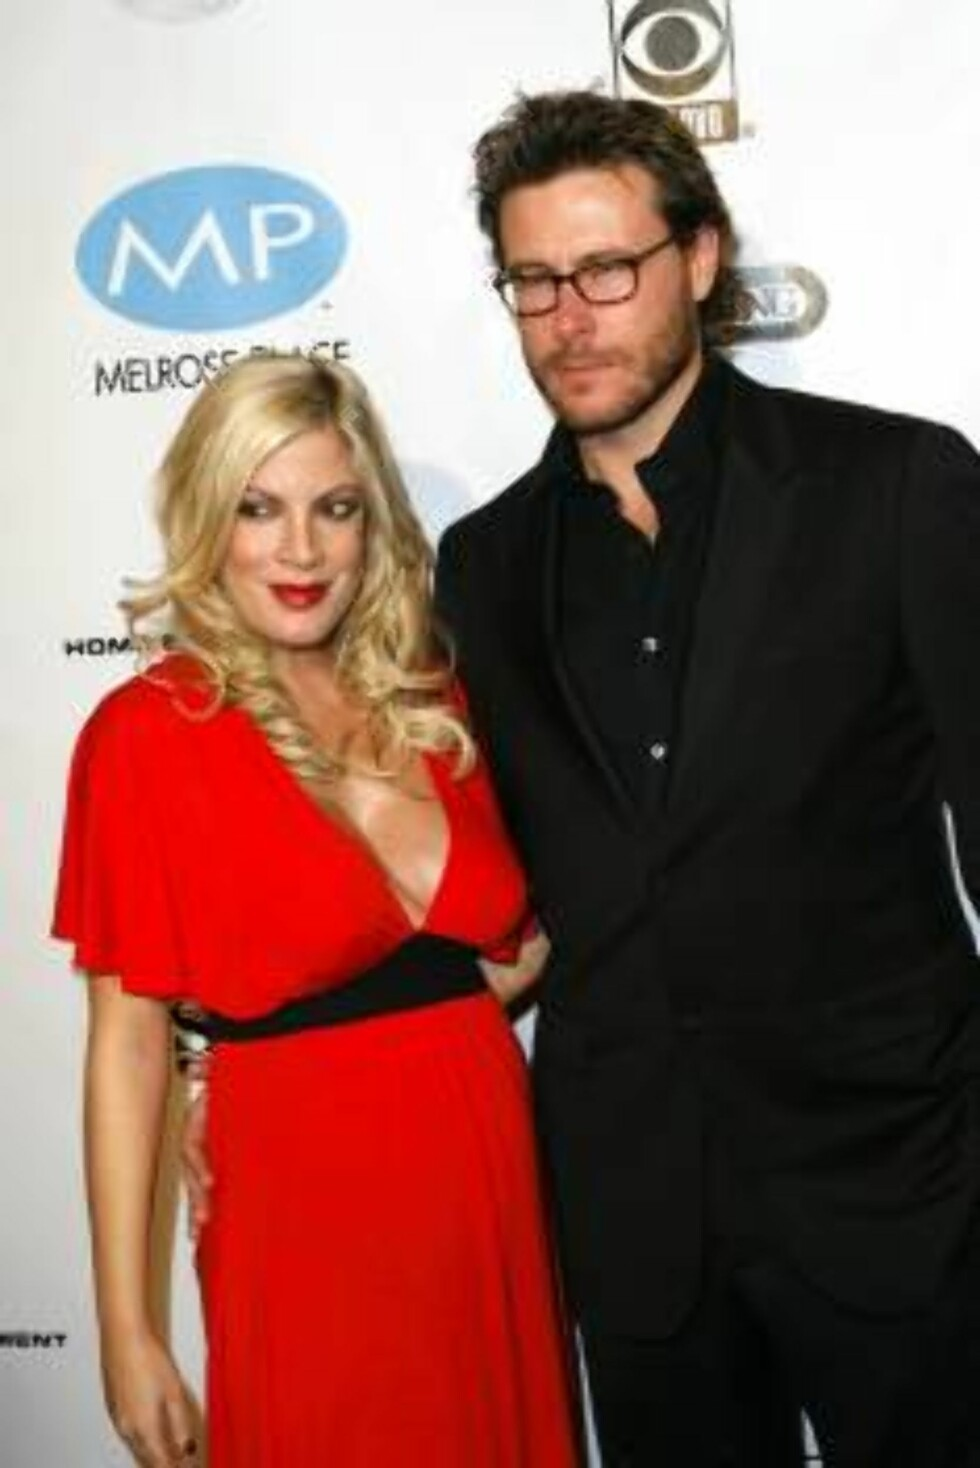 BEVERLY HILLS 2006-11-03  Tori Spelling, Dean McDermott at the Beverly Hill's 90210 and Melrose Place DVD Launch Party held at Beverly Hilton Hotel.  Photo: Brian Lowe/jpistudios  Code: 4036  COPYRIGHT STELLA PICTURES Foto: STELLA PICTURES